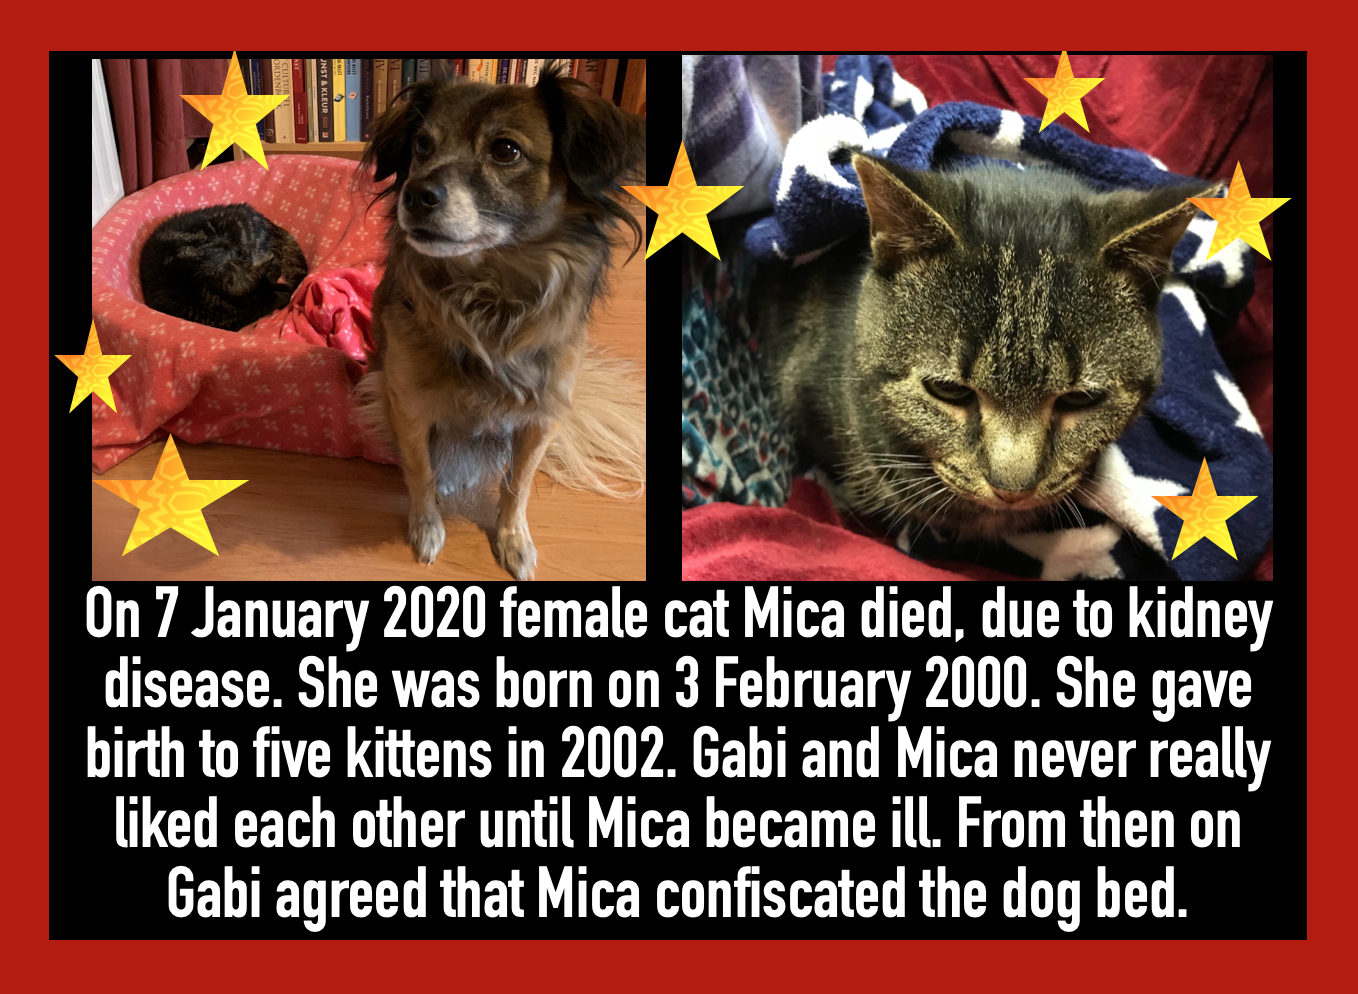 Link To Elderly Cats Female Cat Mica 2000 2020 Cat Care Cat Lady Cats